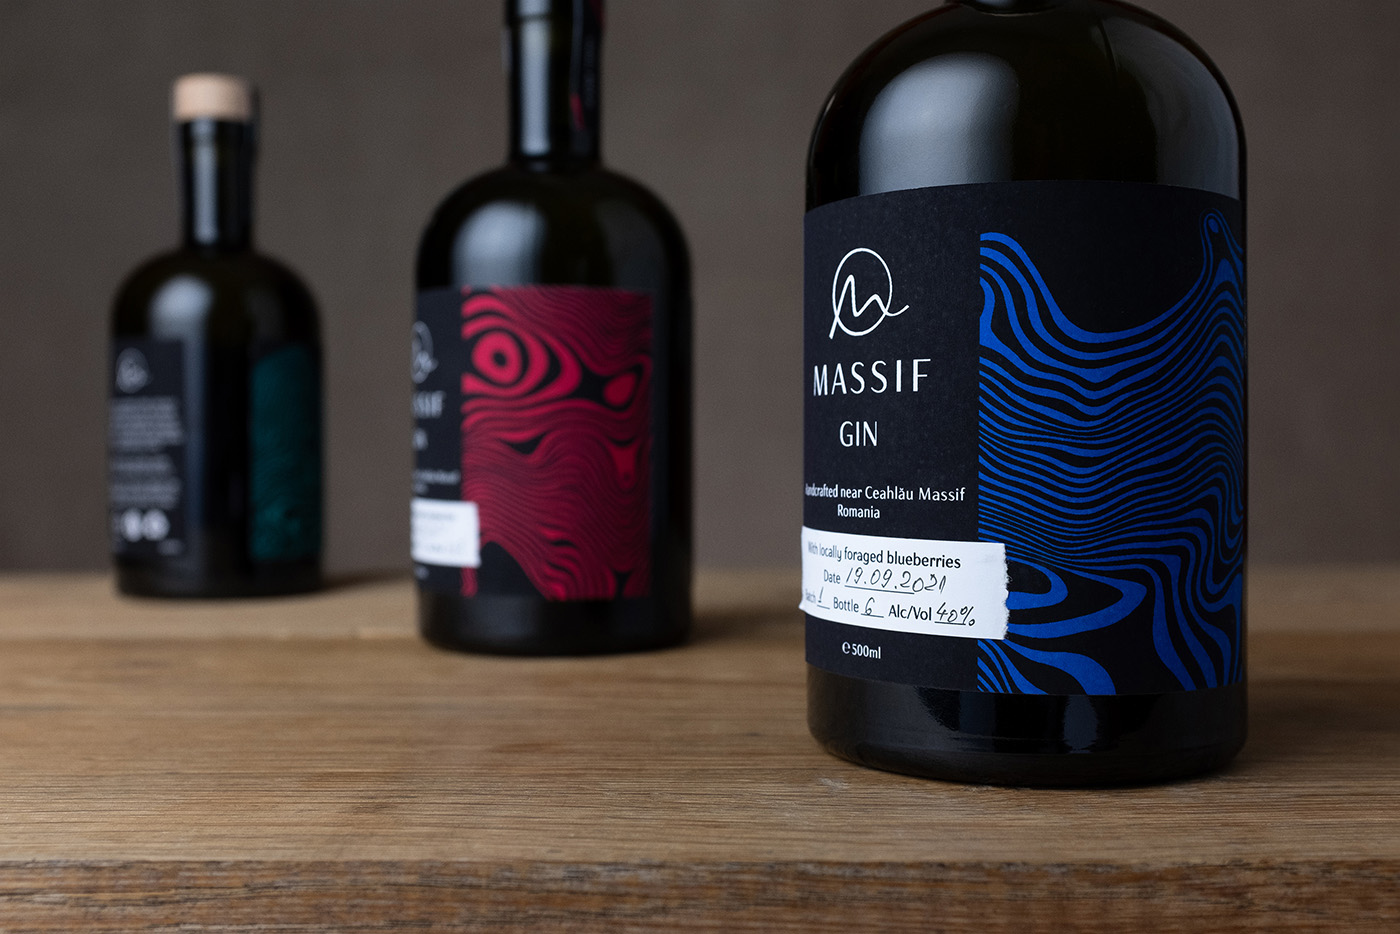 Romanian Massif Gin Designed by Stefan Andries